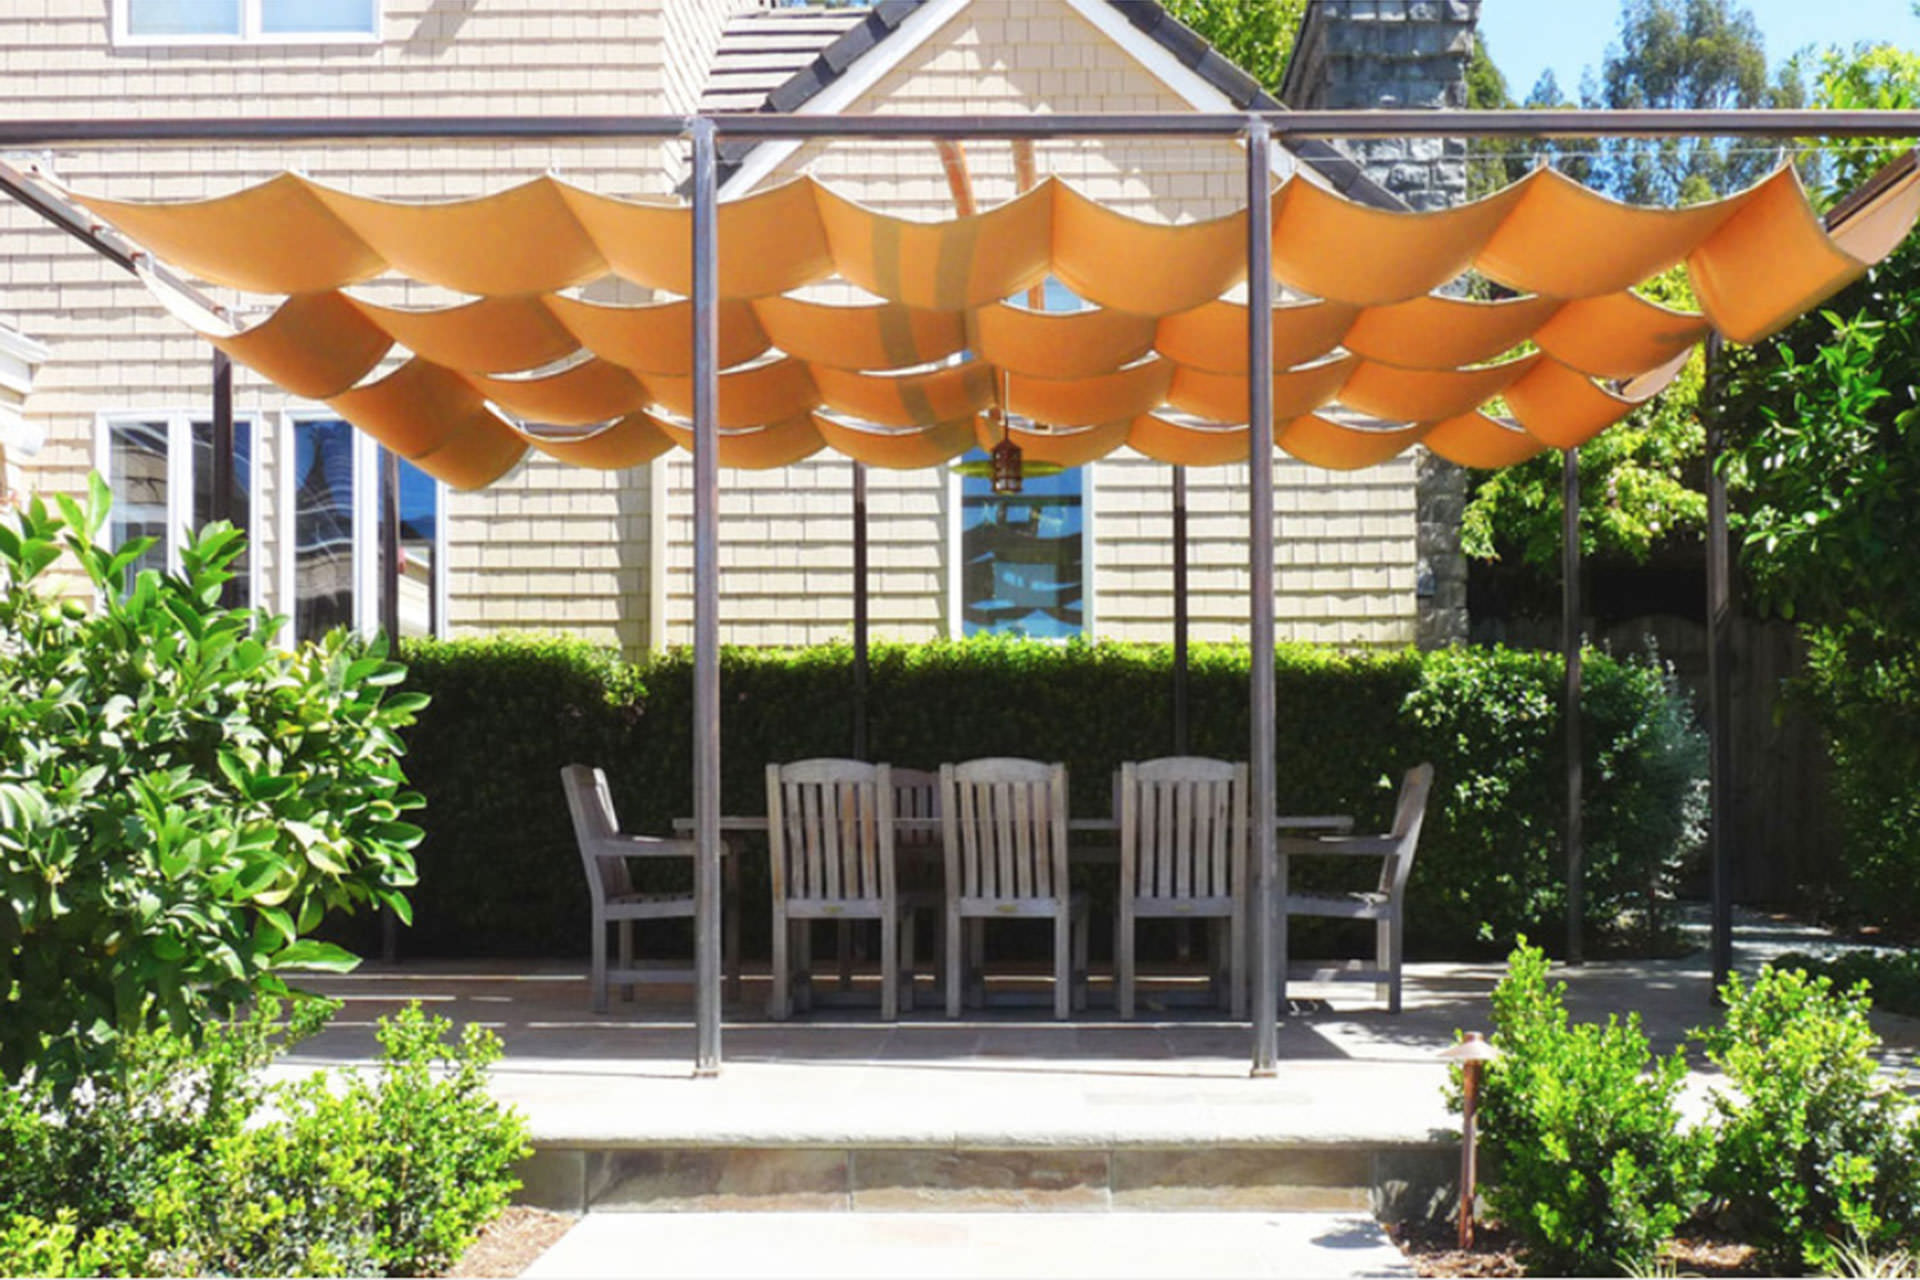 choosing a retractable canopy track: single, multi, cable, or roll